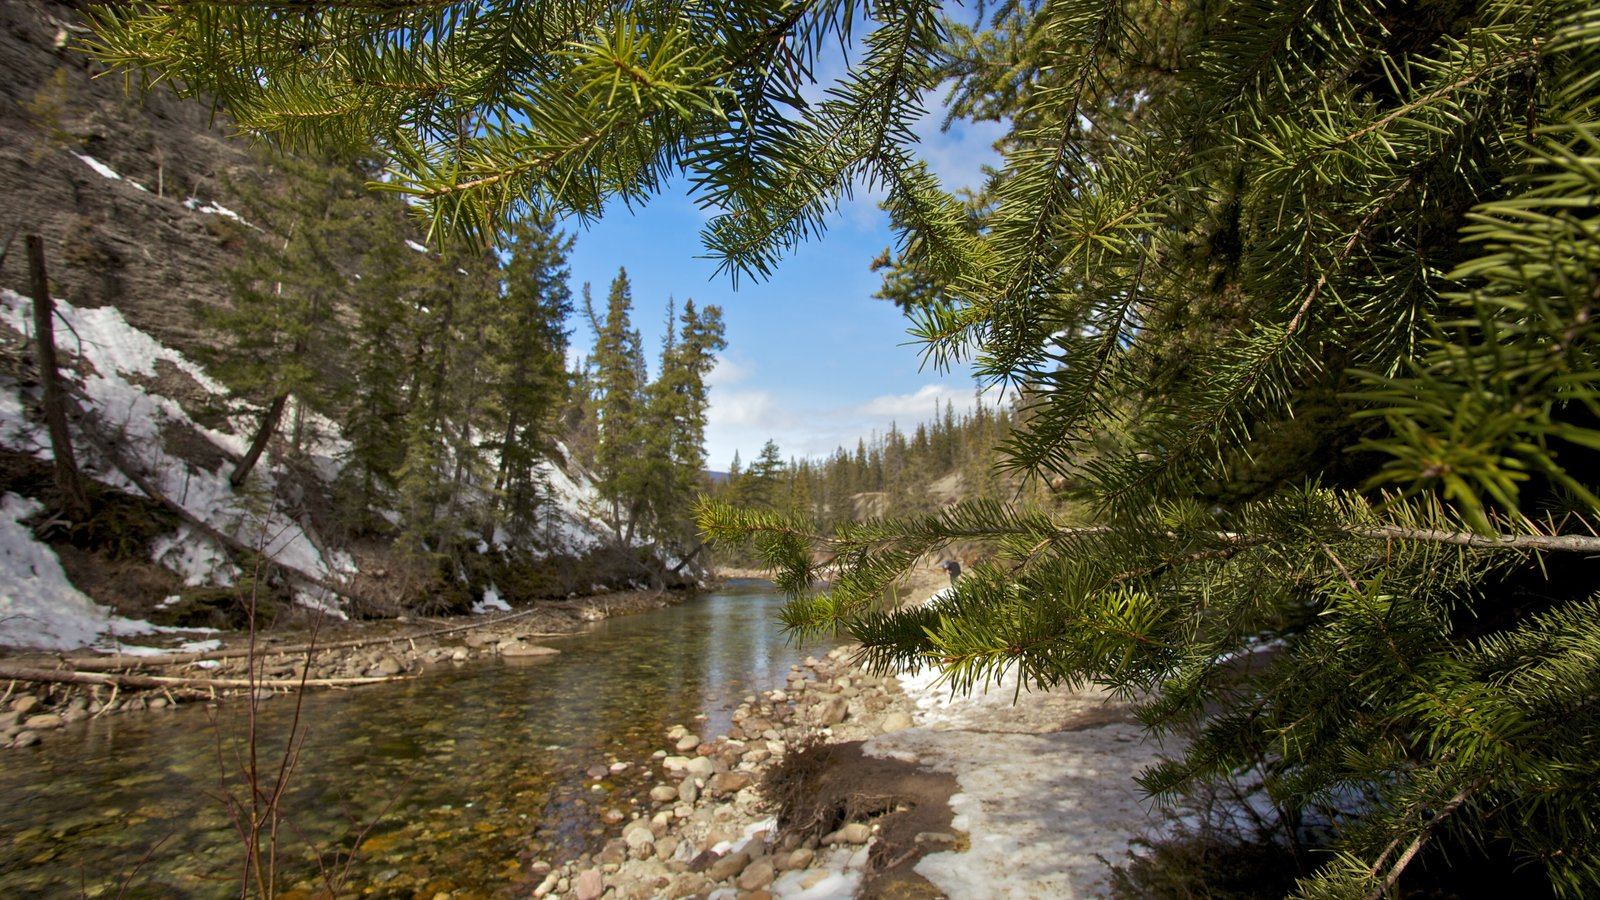 Jasper National Park which includes tranquil scenes and a river or creek